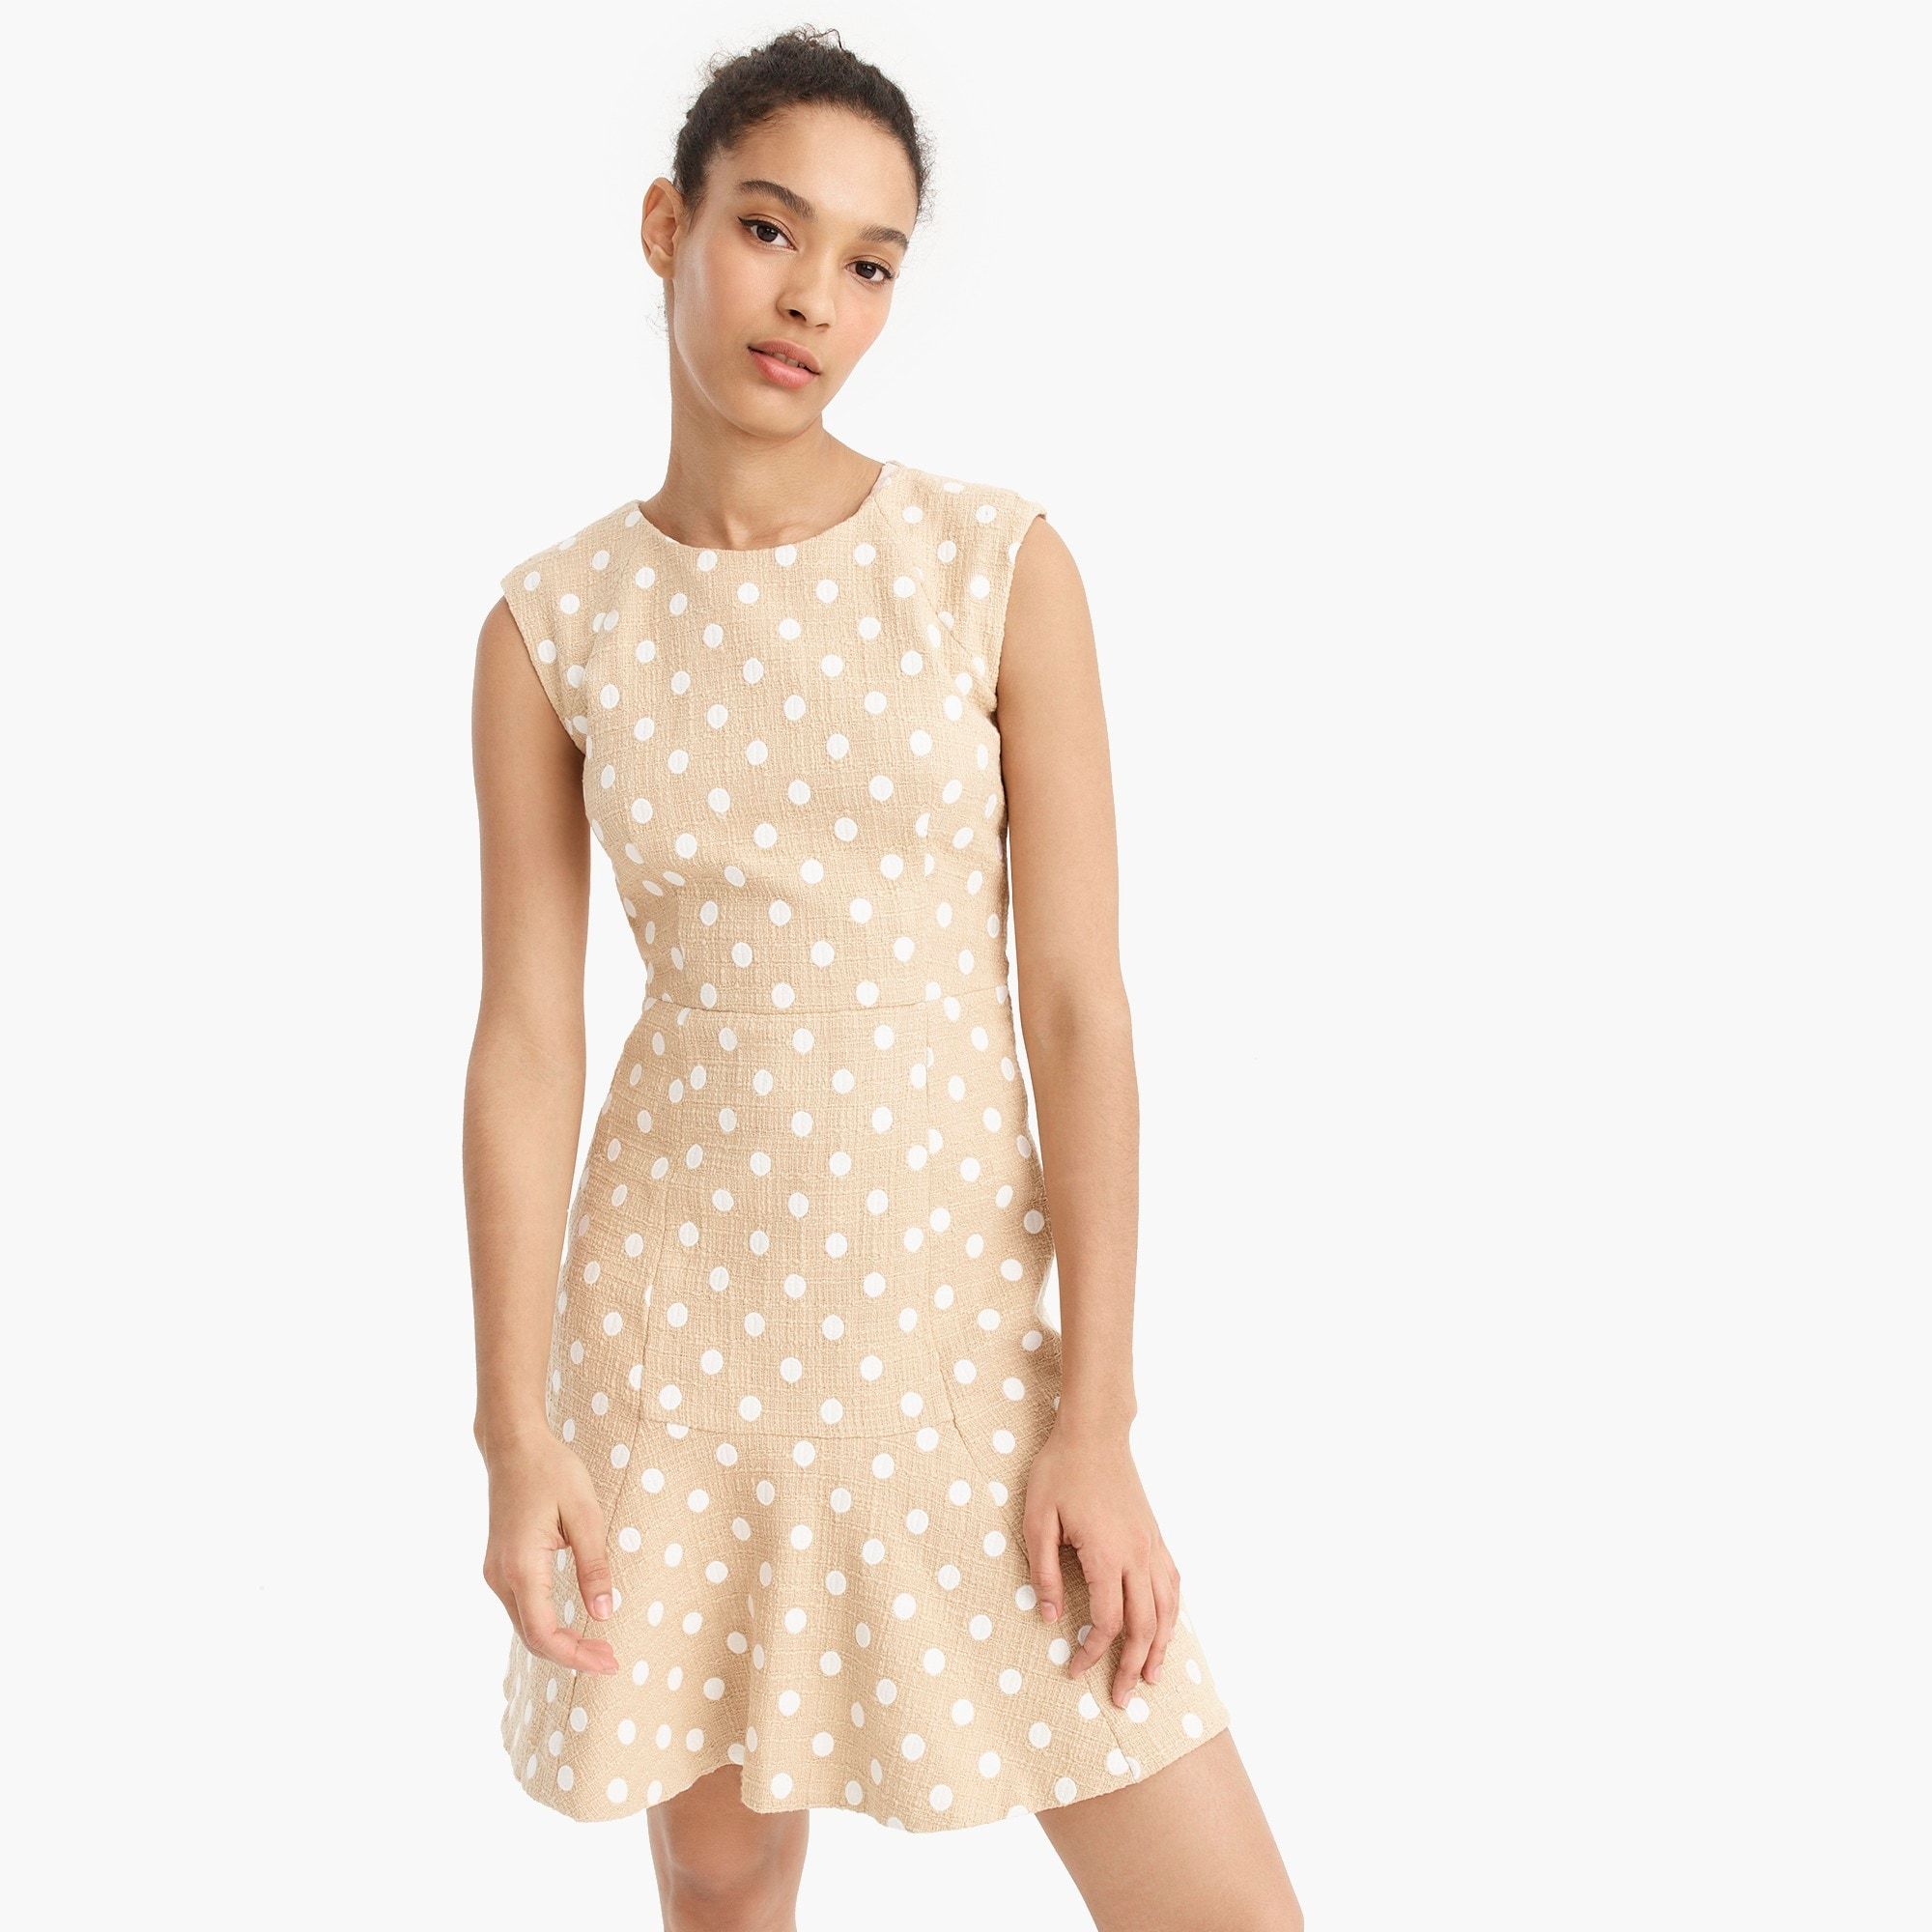 A-line dress in polka-dot embroidered tweed with fluted hem